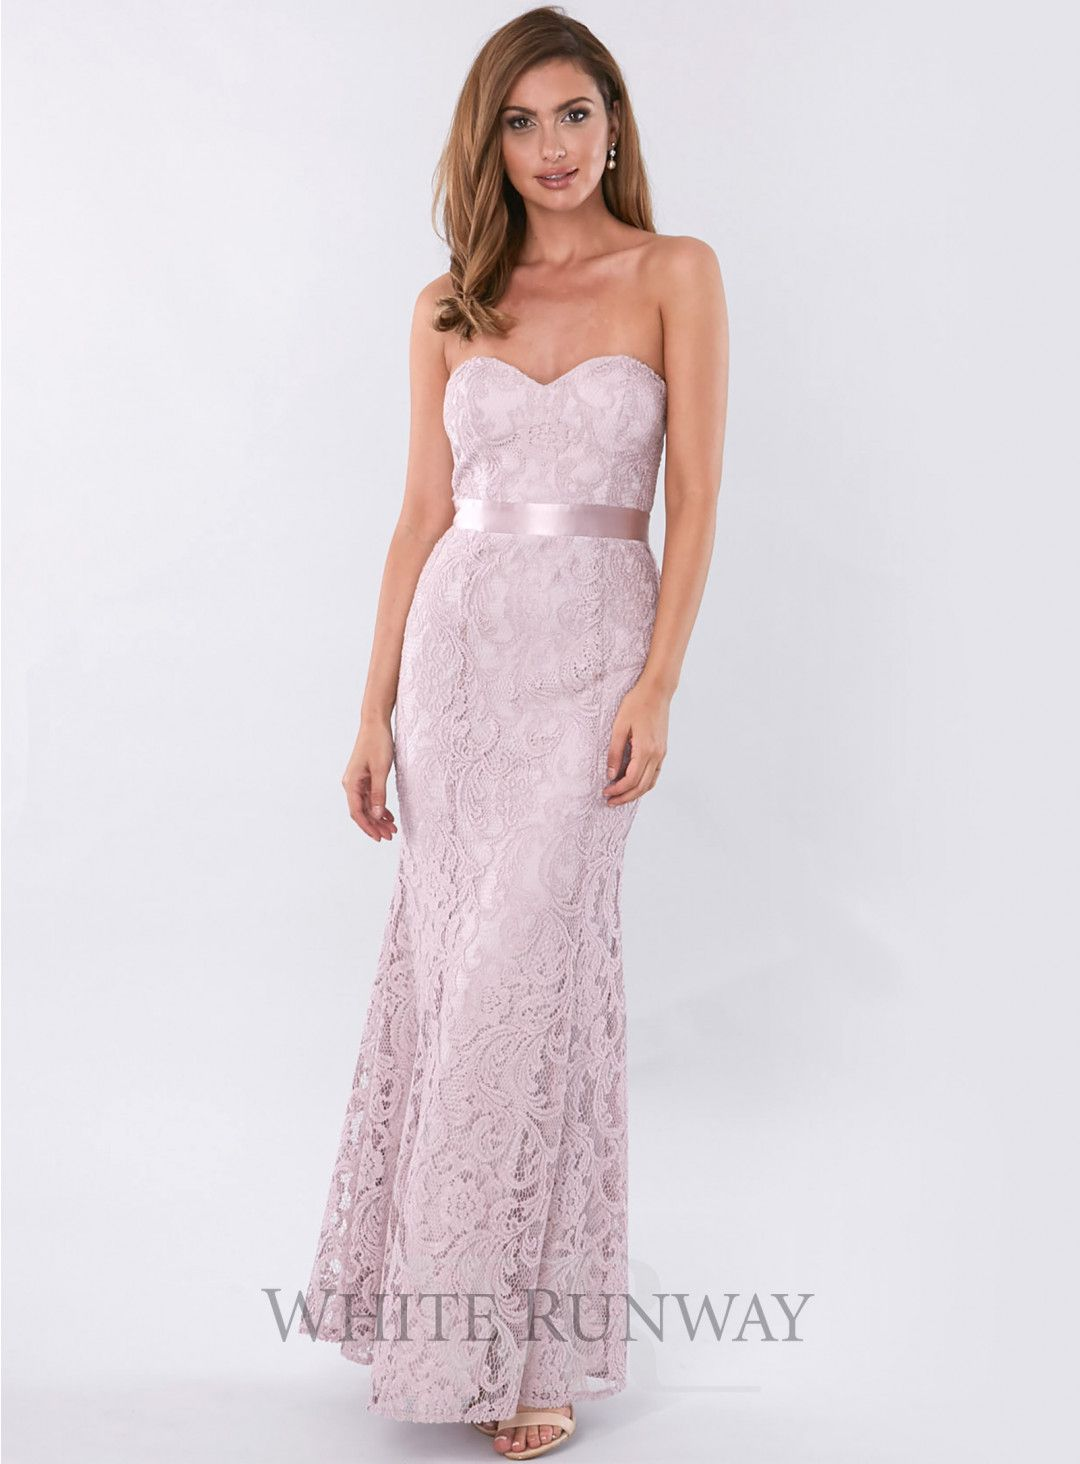 Flynn Dress . A gorgeous full length dress by Mr K. A strapless lace gown with sweetheart neckline and satin waistband.